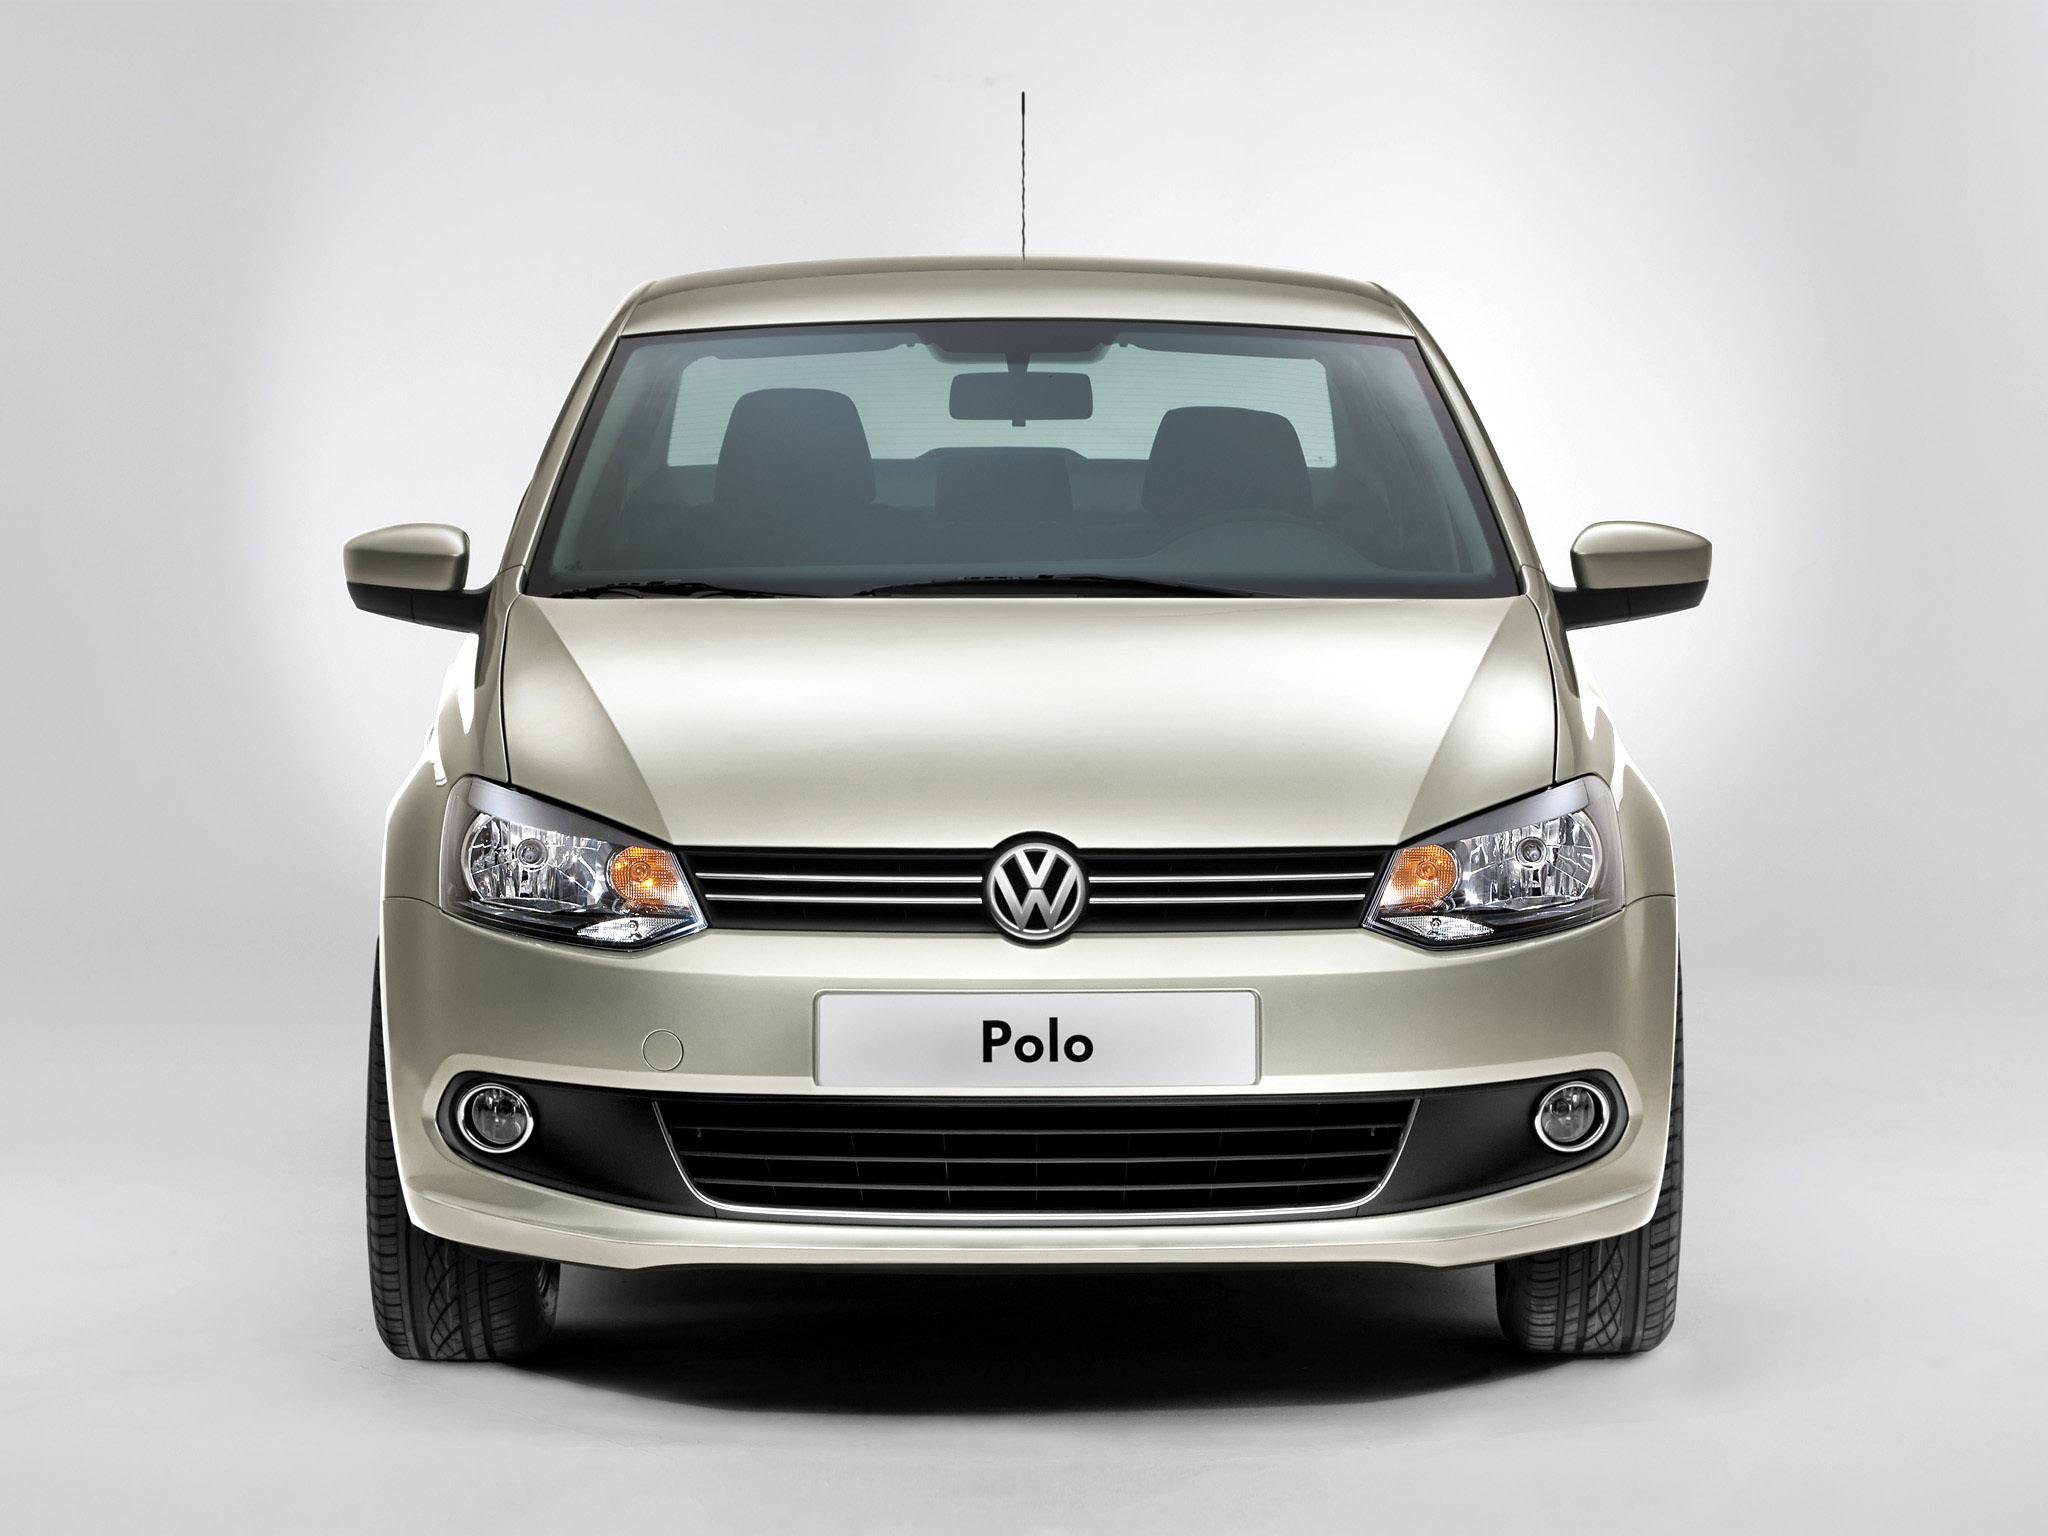 volkswagen polo sedan 2010 volkswagen polo sedan 2010 photo 07 car in pictures car photo gallery. Black Bedroom Furniture Sets. Home Design Ideas